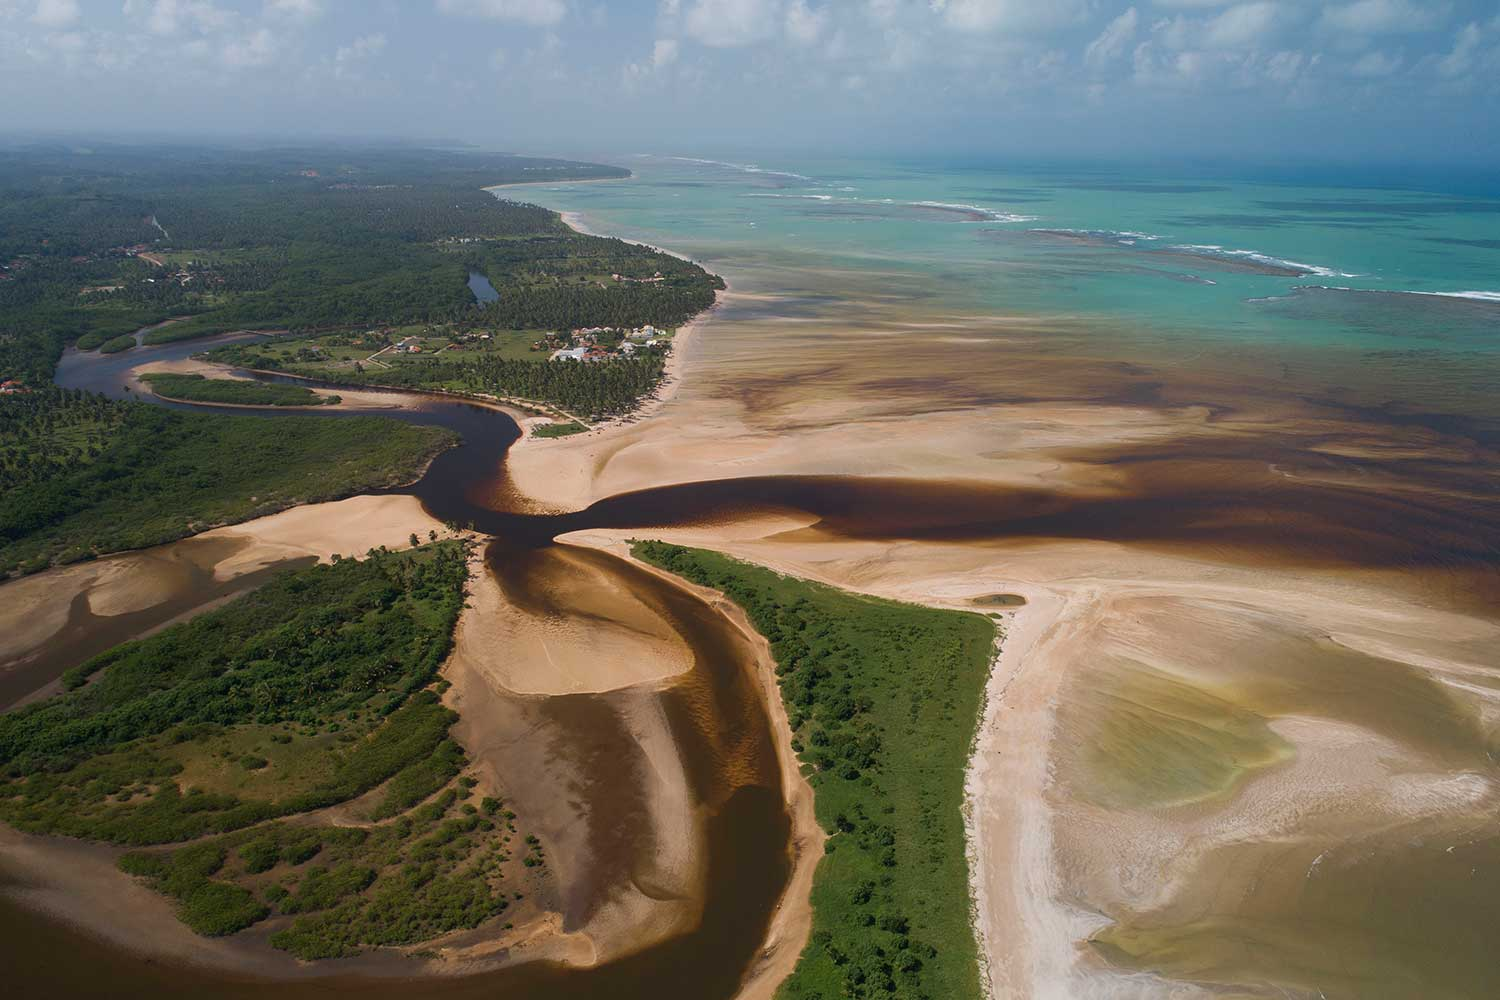 The mouth of Tatuamunha river.